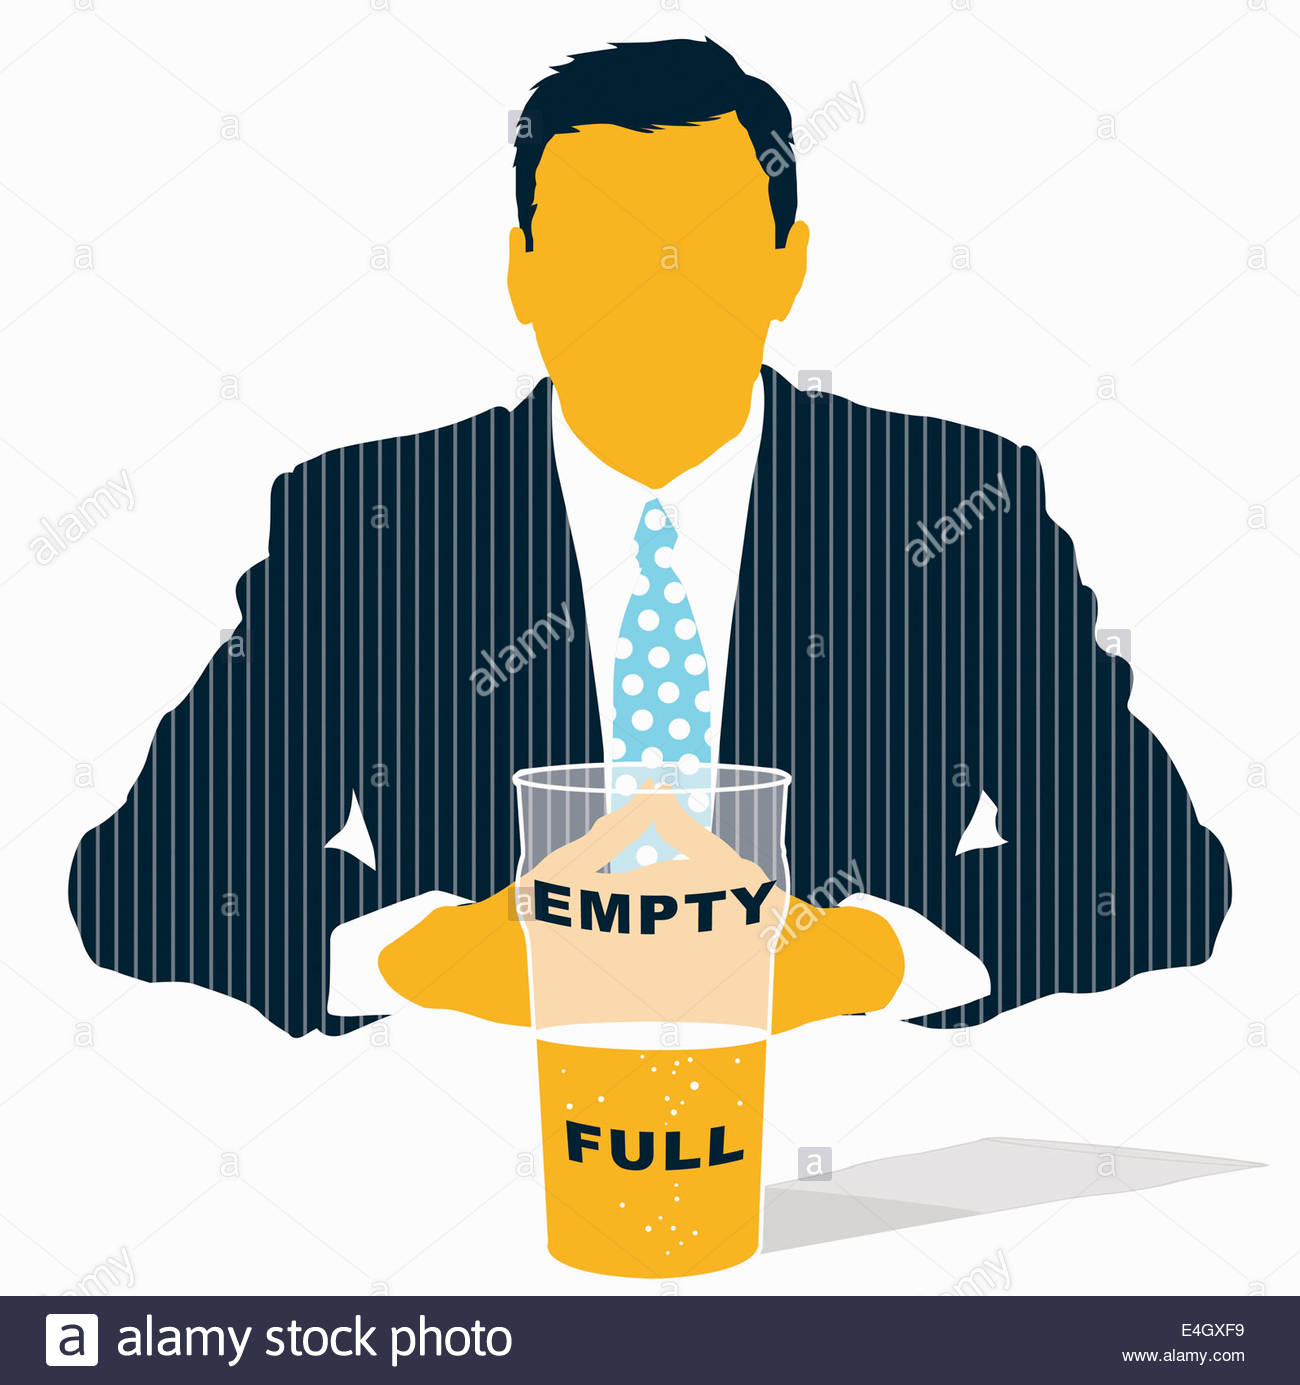 Businessman looking at glass half empty half full - Stock Image